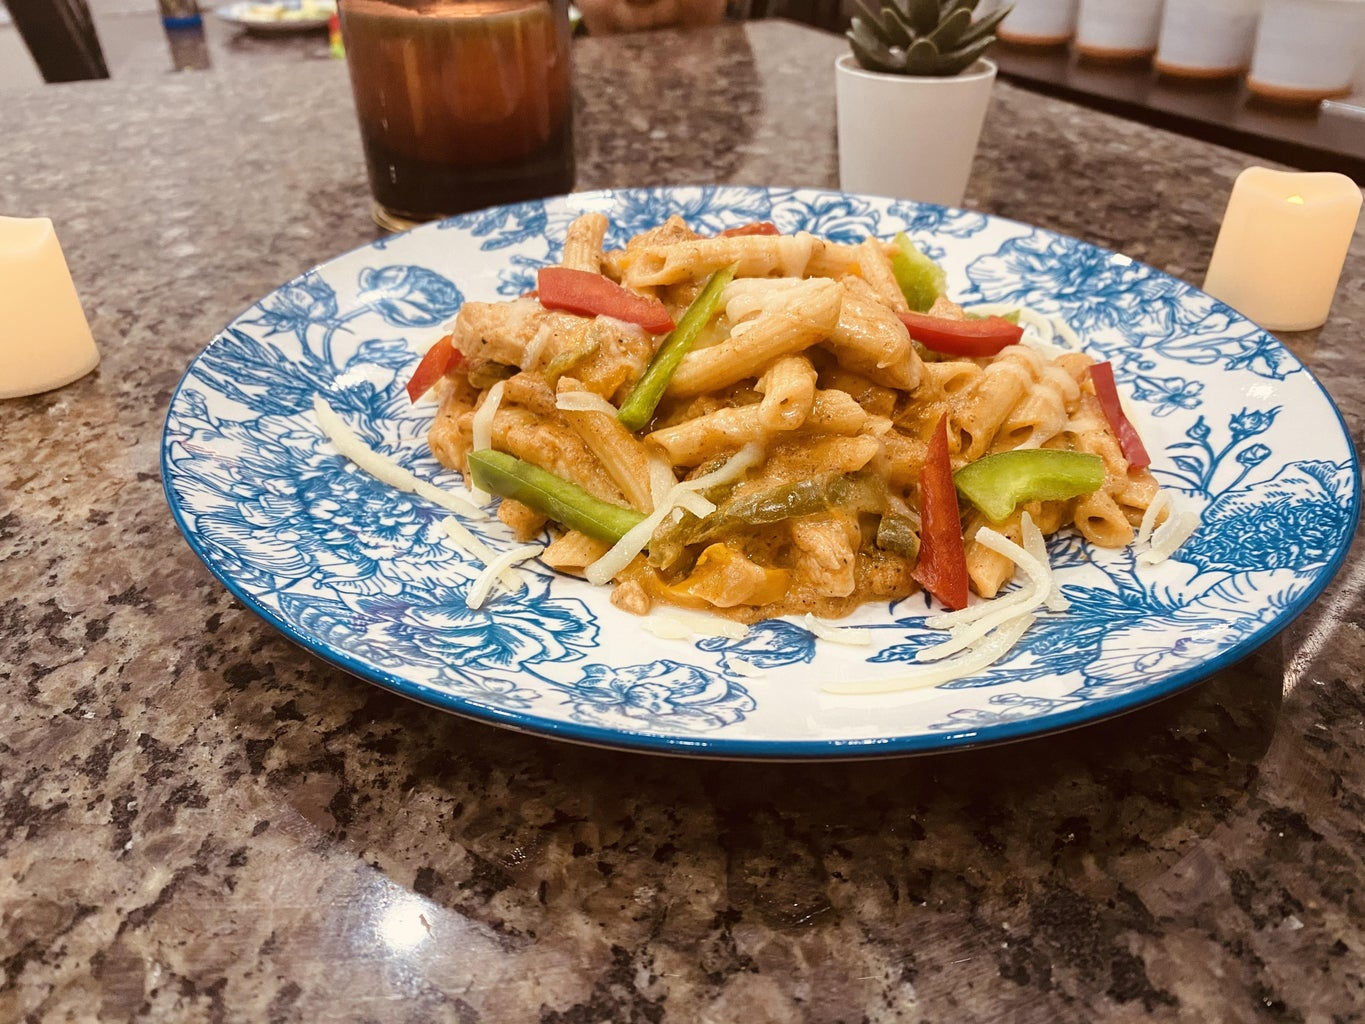 Dish Out and Enjoy Your Chicken Fajita Pasta